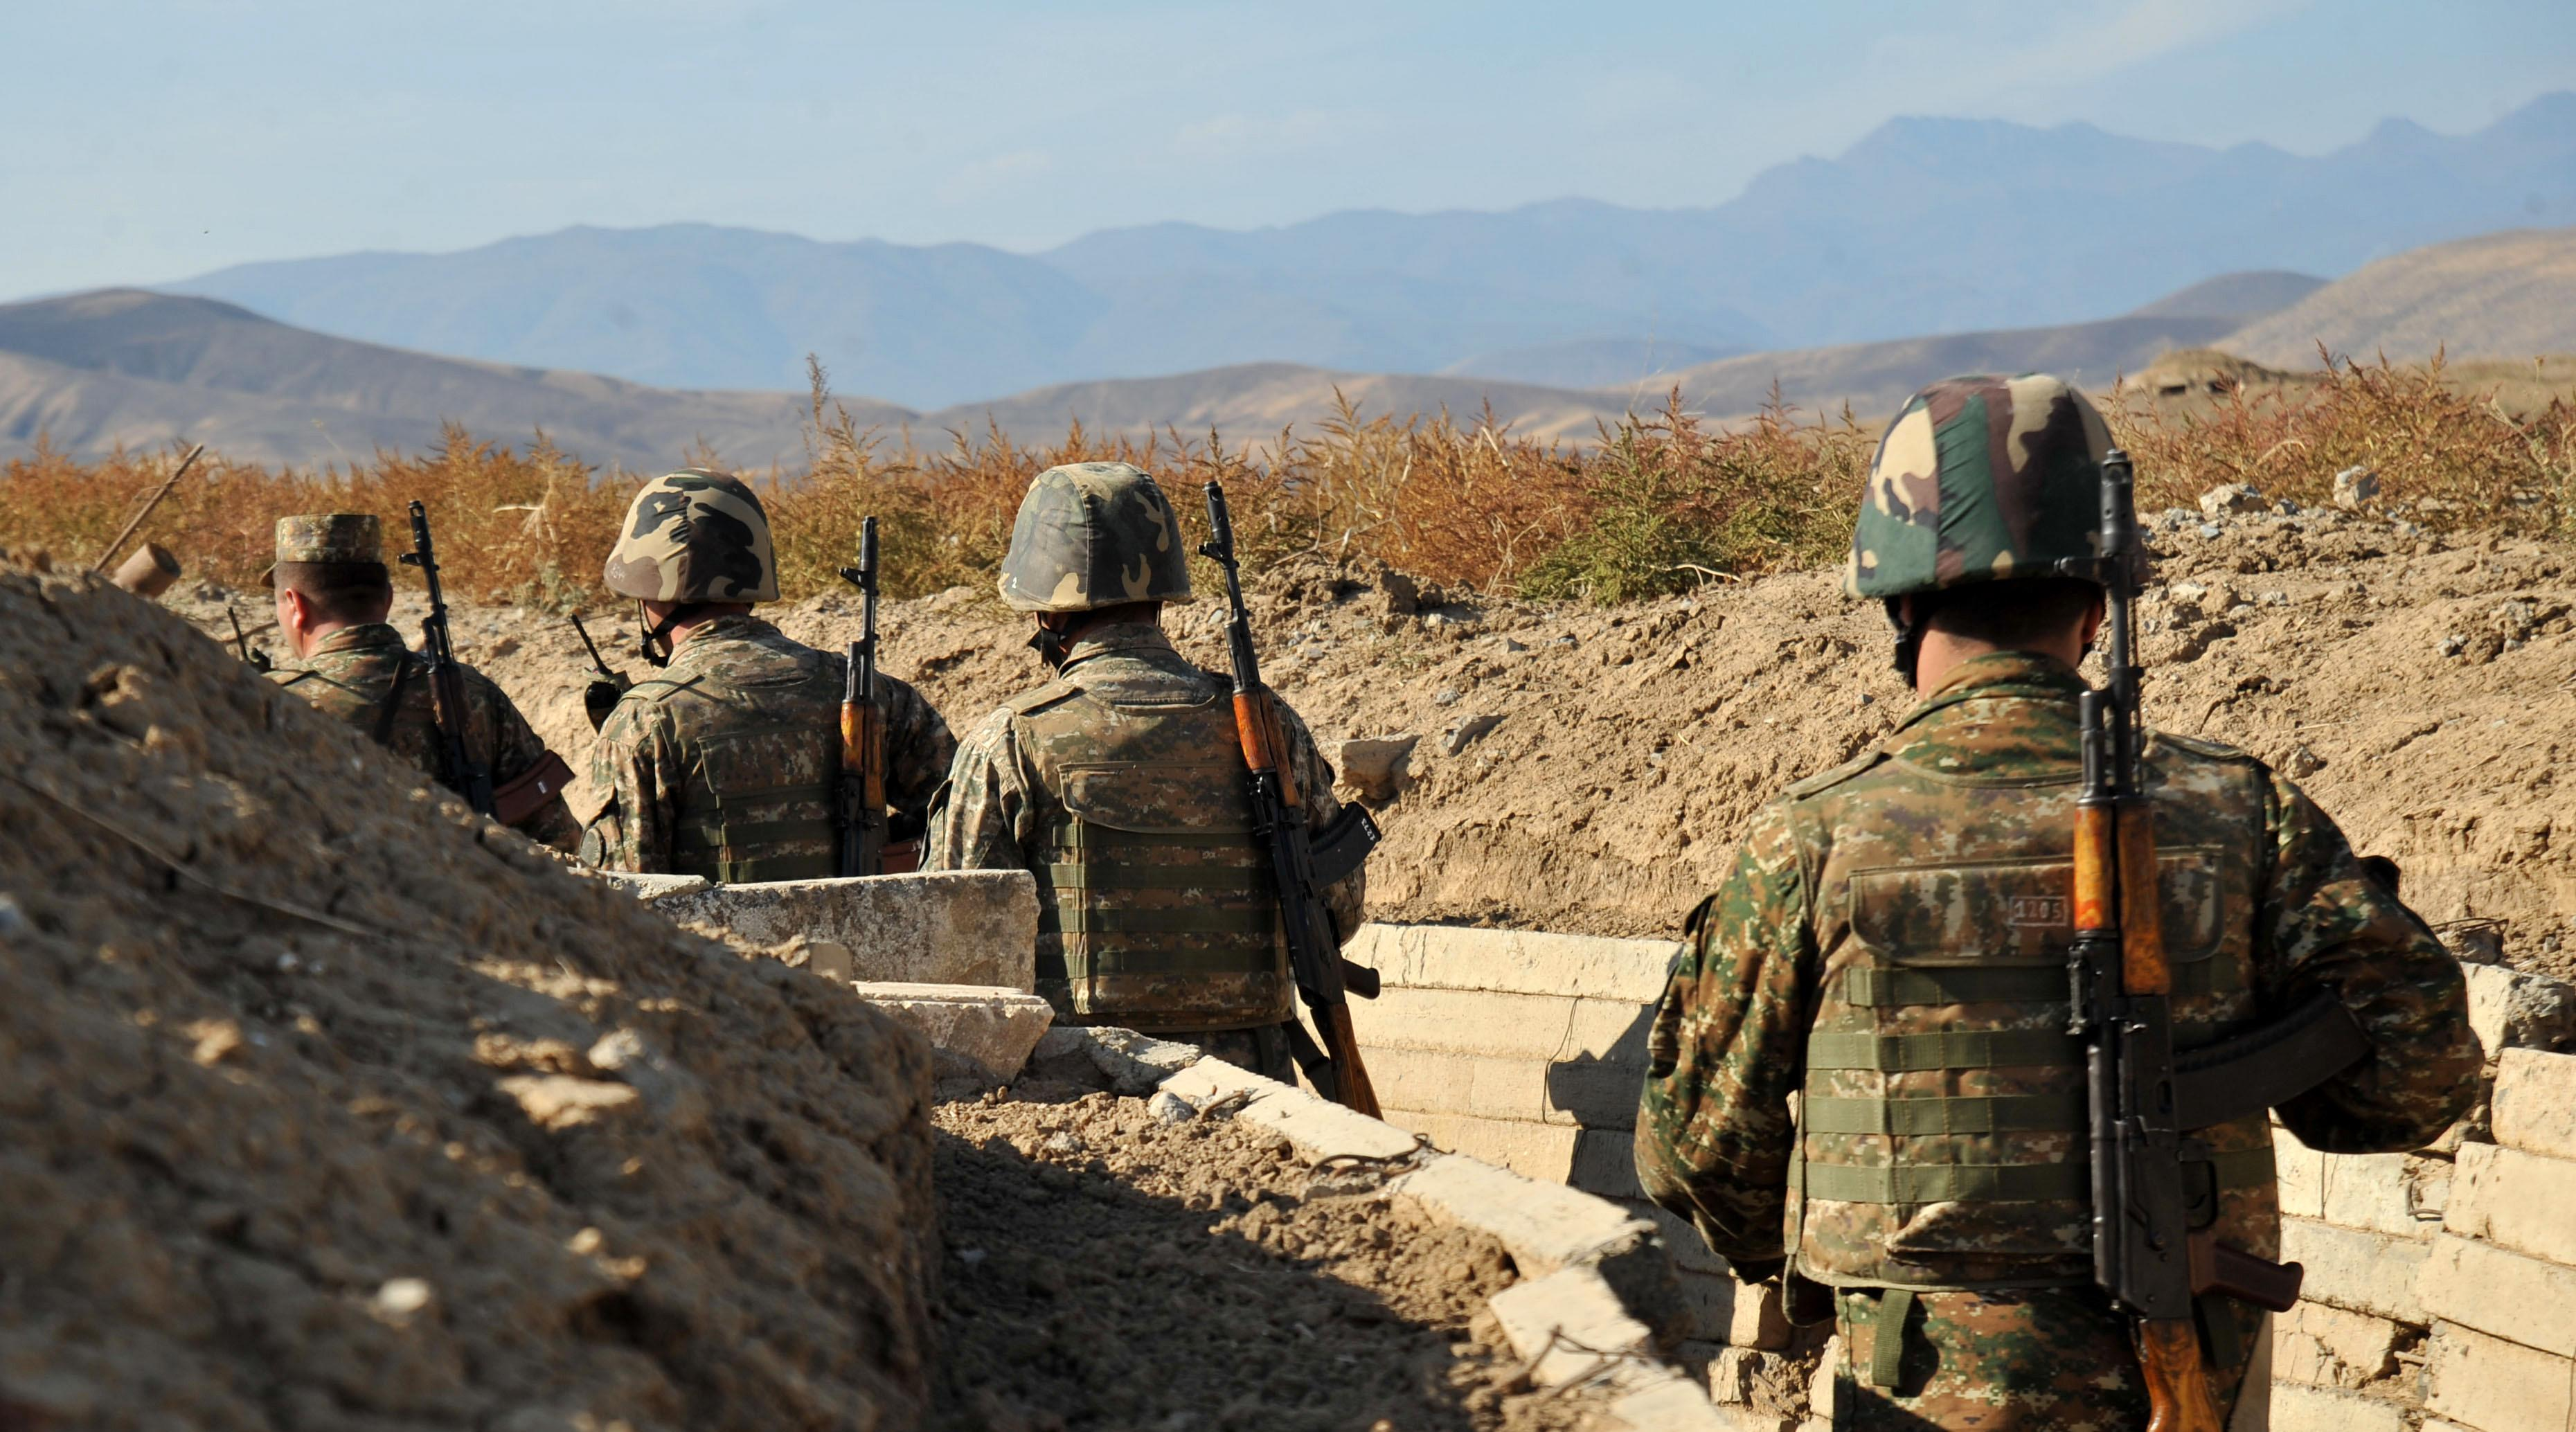 Armenian soldiers with the self-proclaimed Republic of Nagorno-Karabagh walk through trenches at the frontline on the border with Azerbaijan, on October 25, 2012 (AFP Photo/Karen Minasyan)